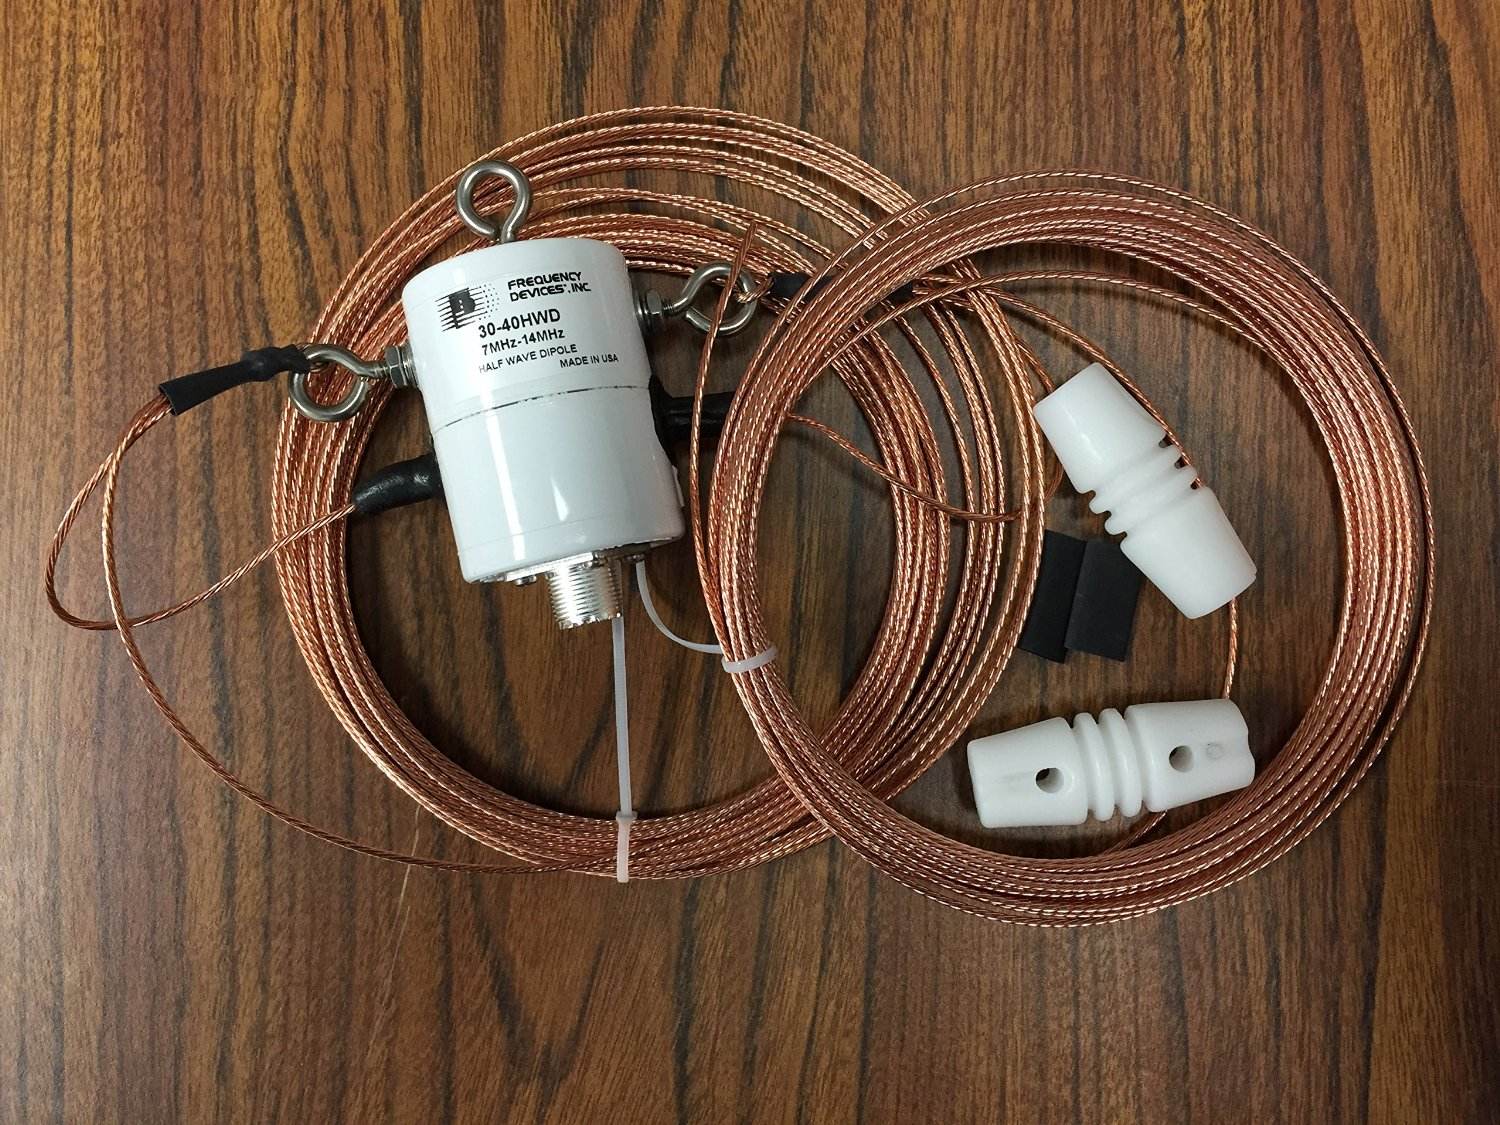 Cheap 2 Meter Dipole, find 2 Meter Dipole deals on line at